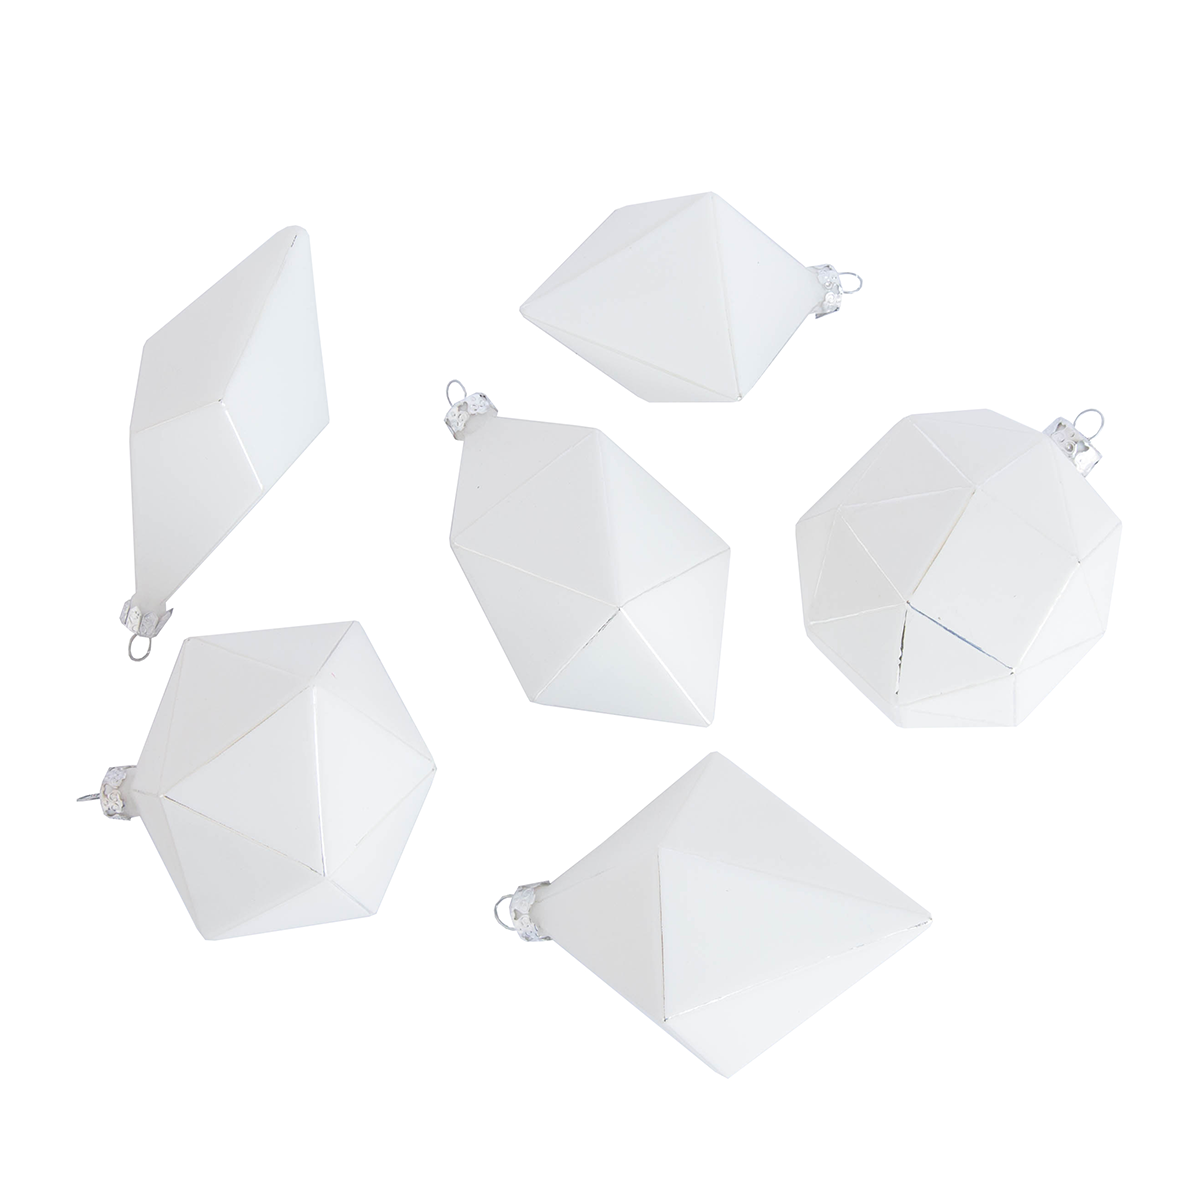 White_Geo_Ornaments_1.png